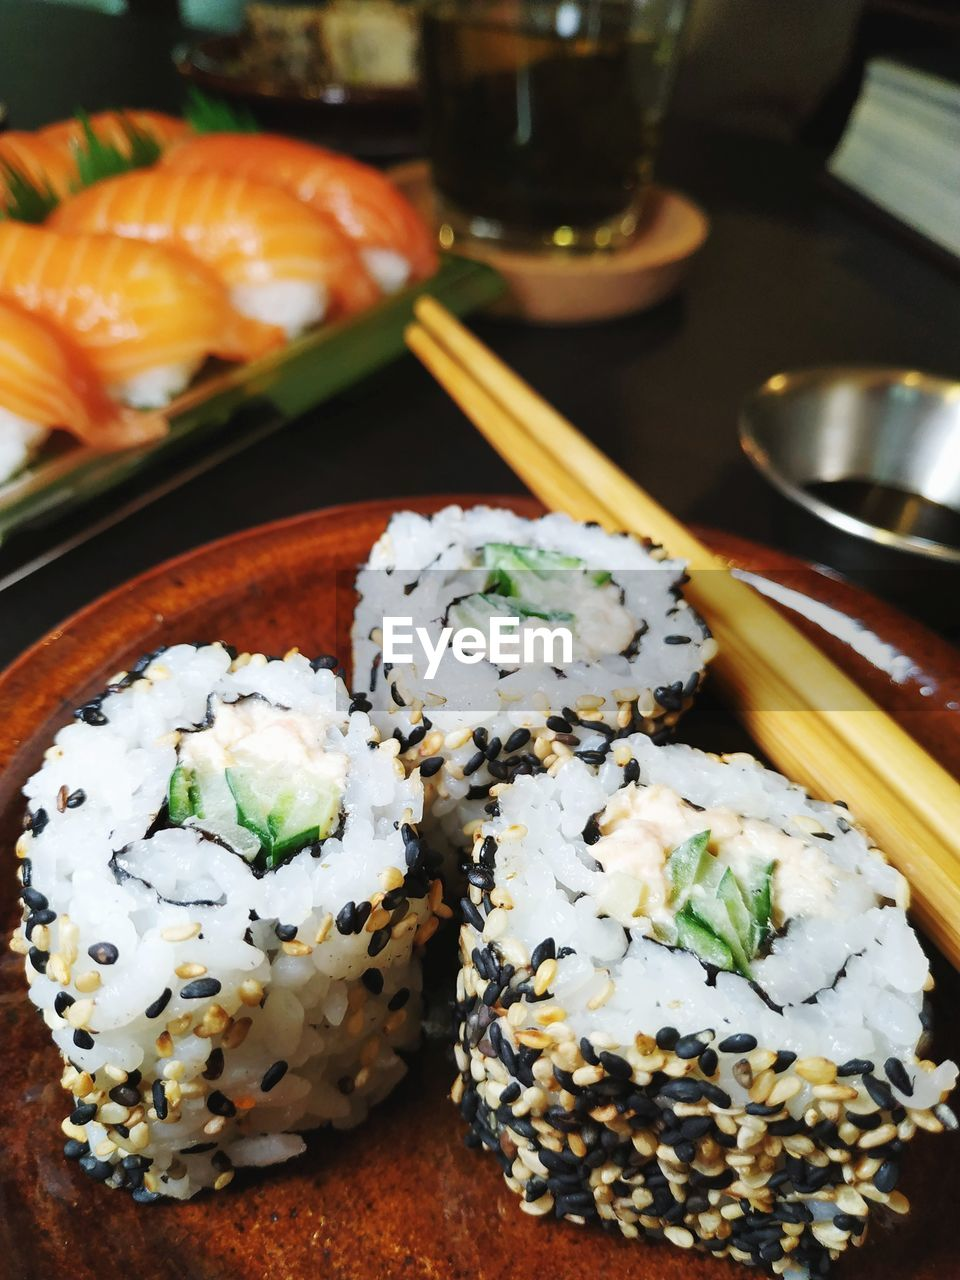 food and drink, food, sushi, ready-to-eat, freshness, rice, indoors, japanese food, still life, plate, asian food, healthy eating, rice - food staple, serving size, wellbeing, no people, seafood, table, close-up, garnish, soy sauce, tray, temptation, caviar, dinner